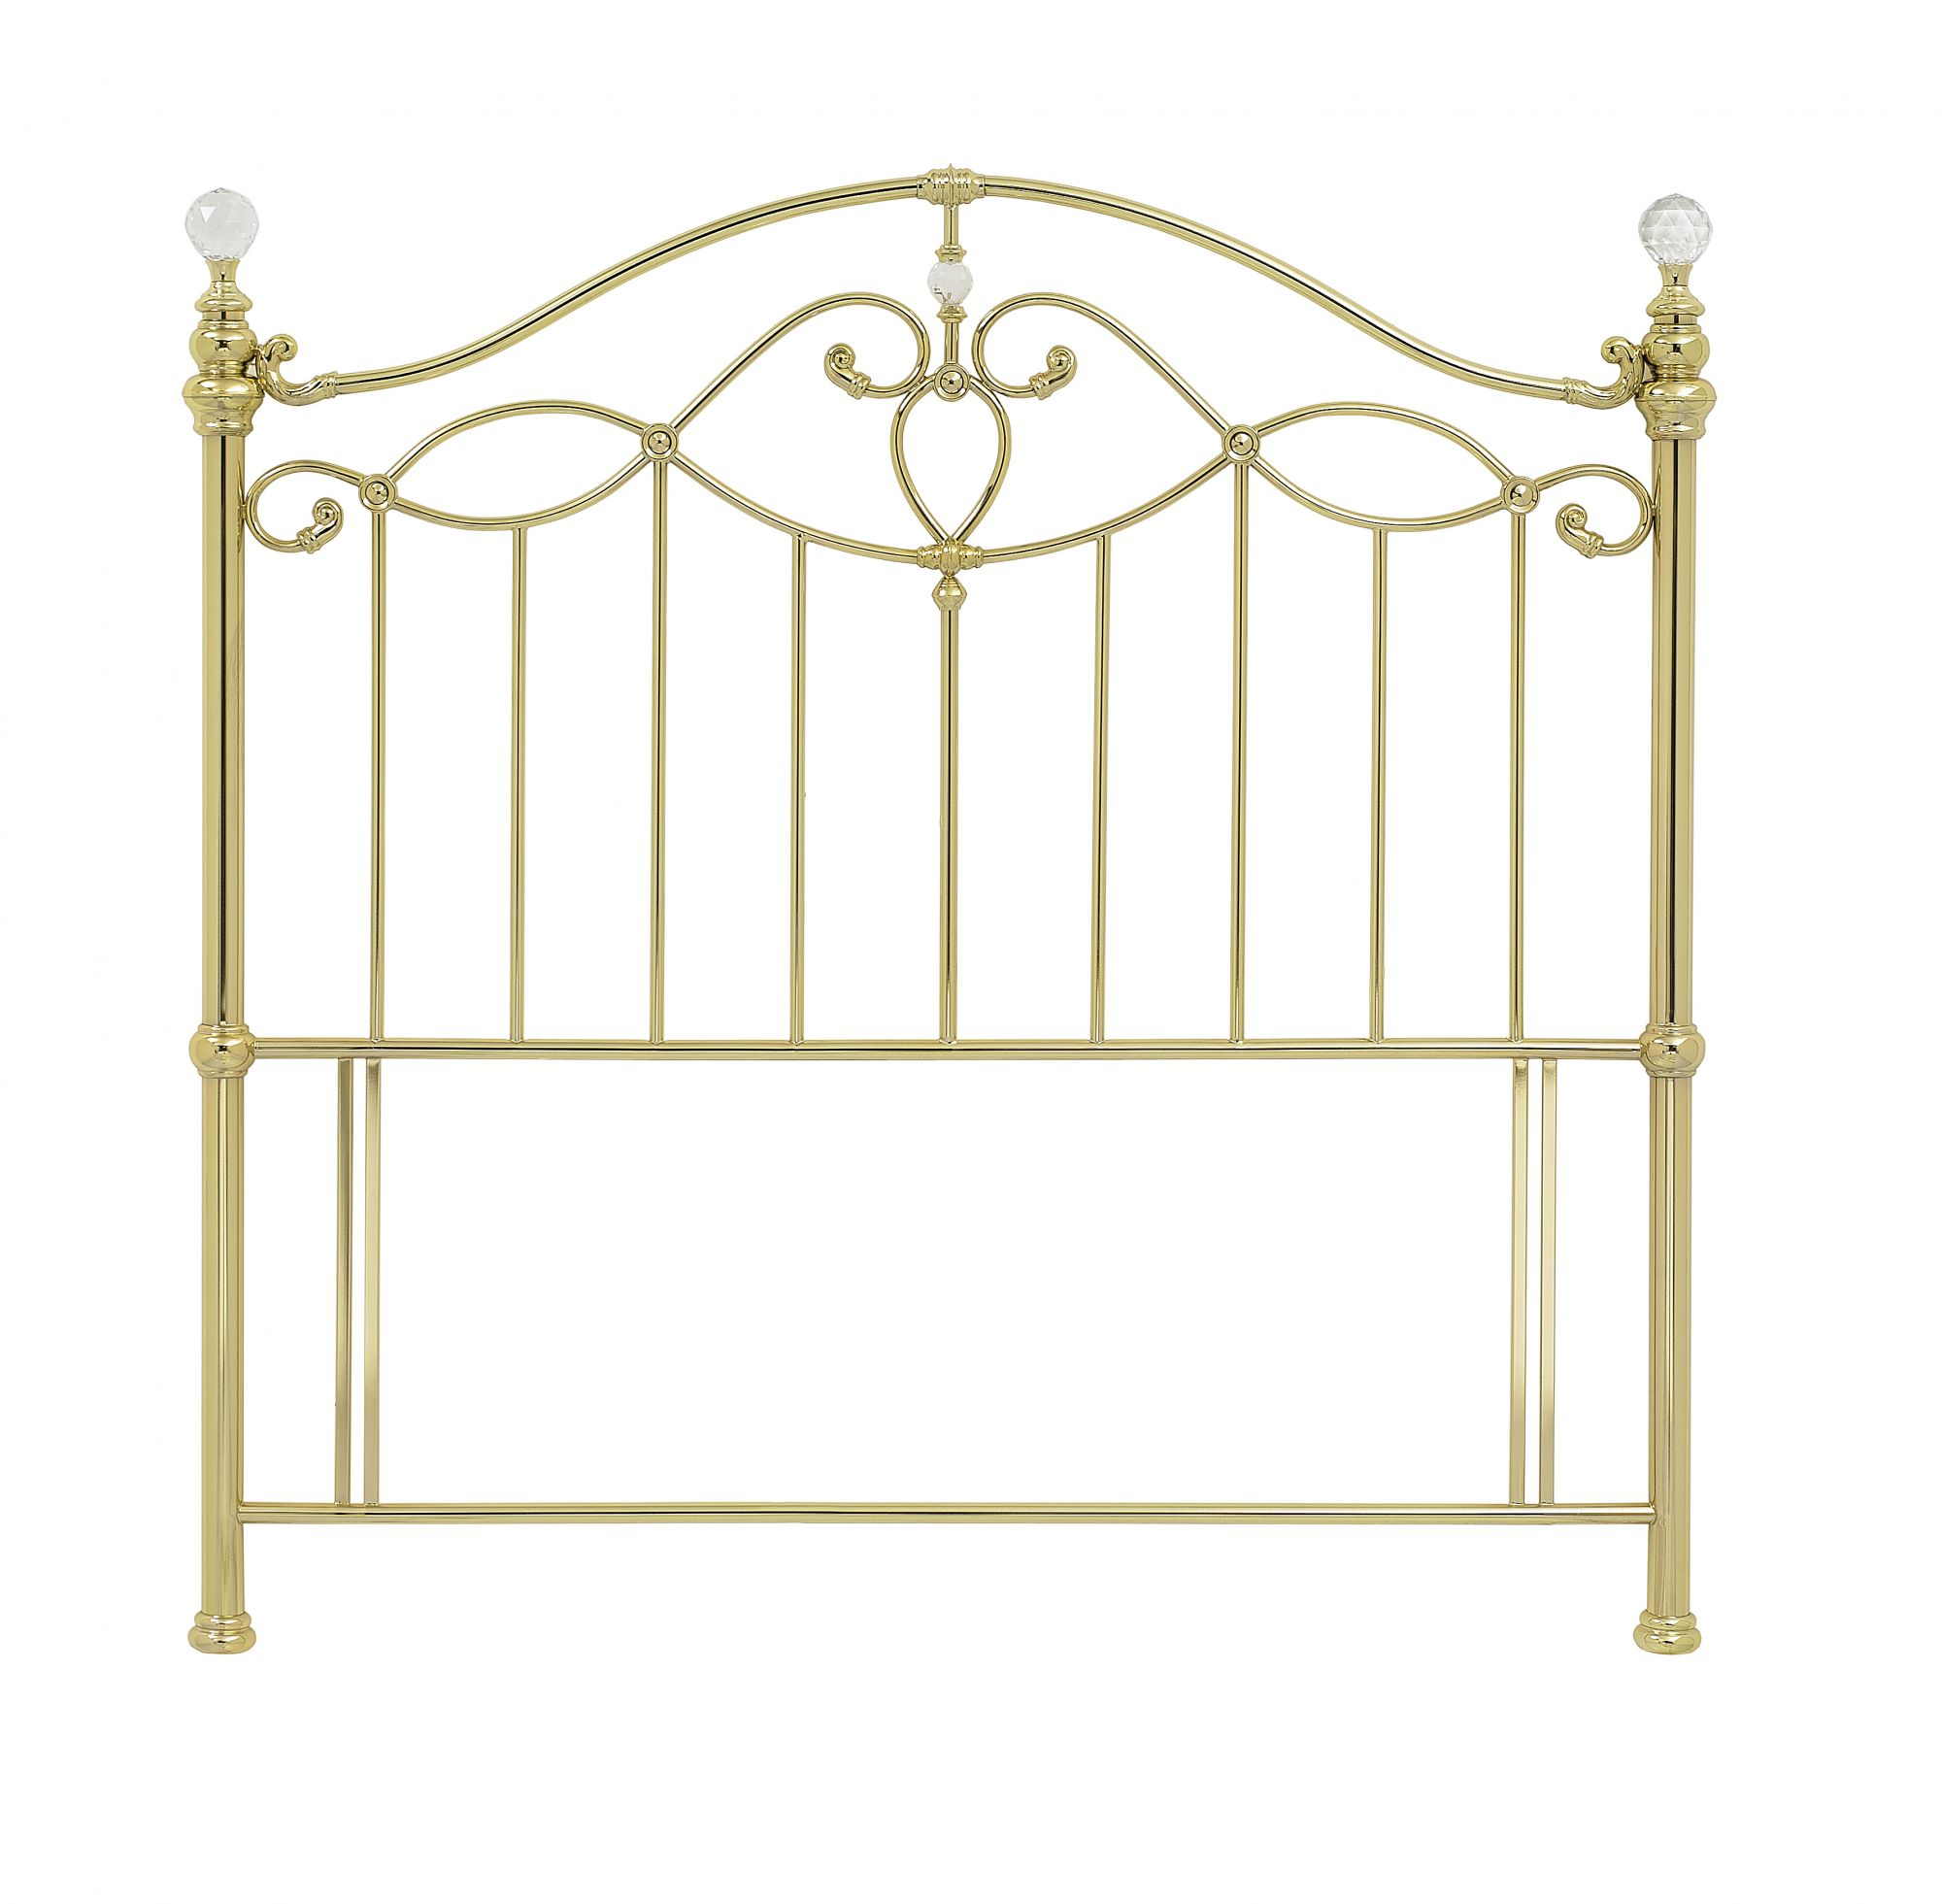 Photo of Bentley designs elena 5ft kingsize shiny gold metal headboard